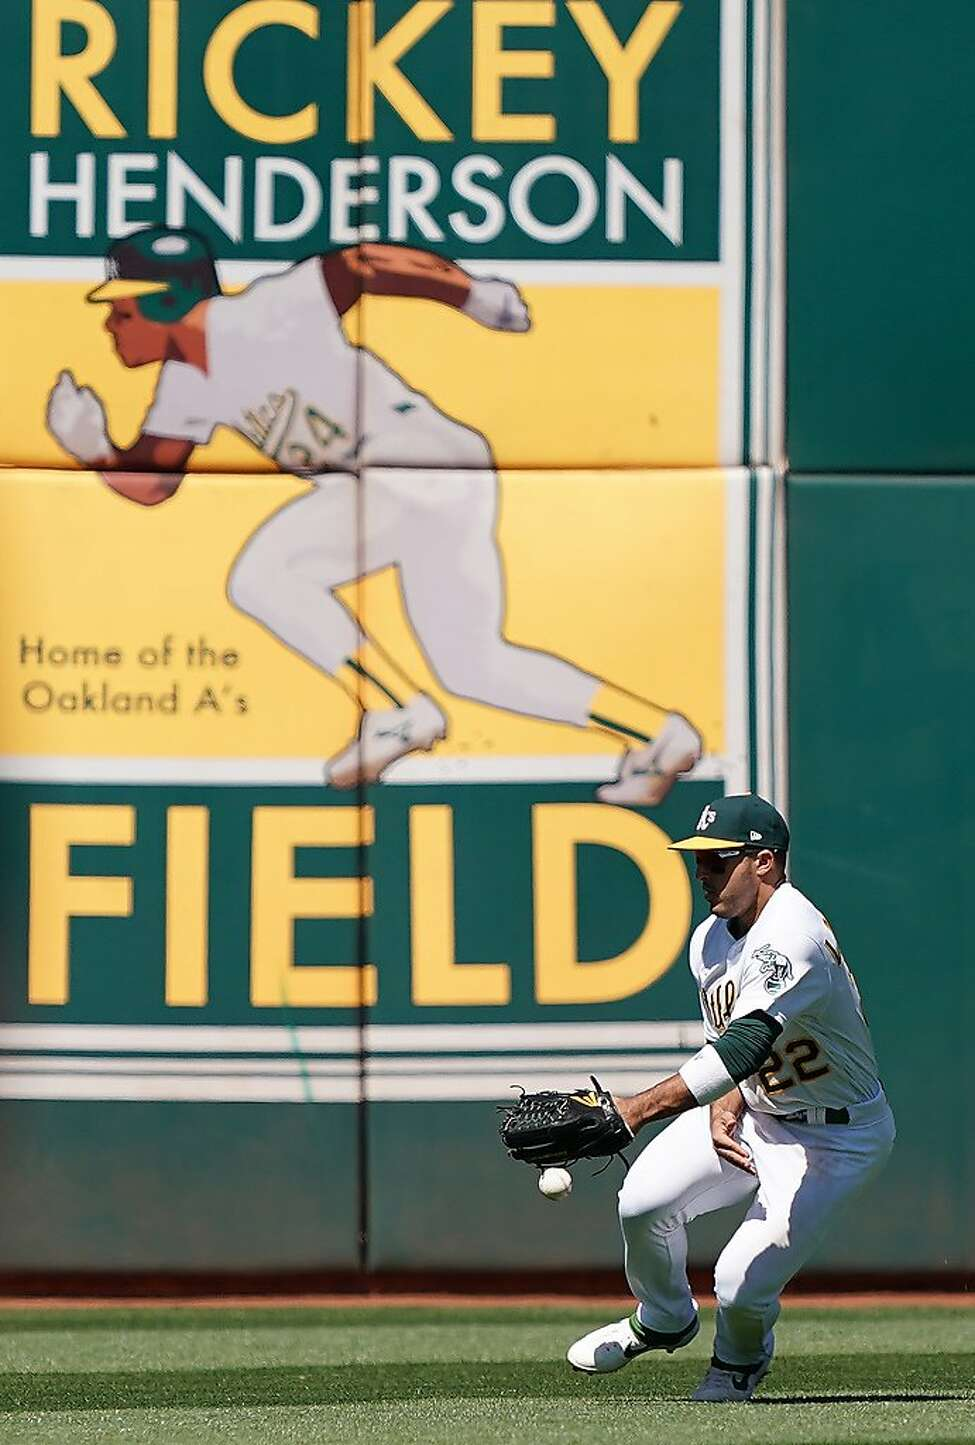 Ramon Laureano #22 of the Oakland Athletics plays the ball on a hop for a base hit off the bat of Brandon Drury of the Toronto Blue Jays in the top of the six inning of a Major League Baseball game at Oakland-Alameda County Coliseum on April 21, 2019 in Oakland, California.